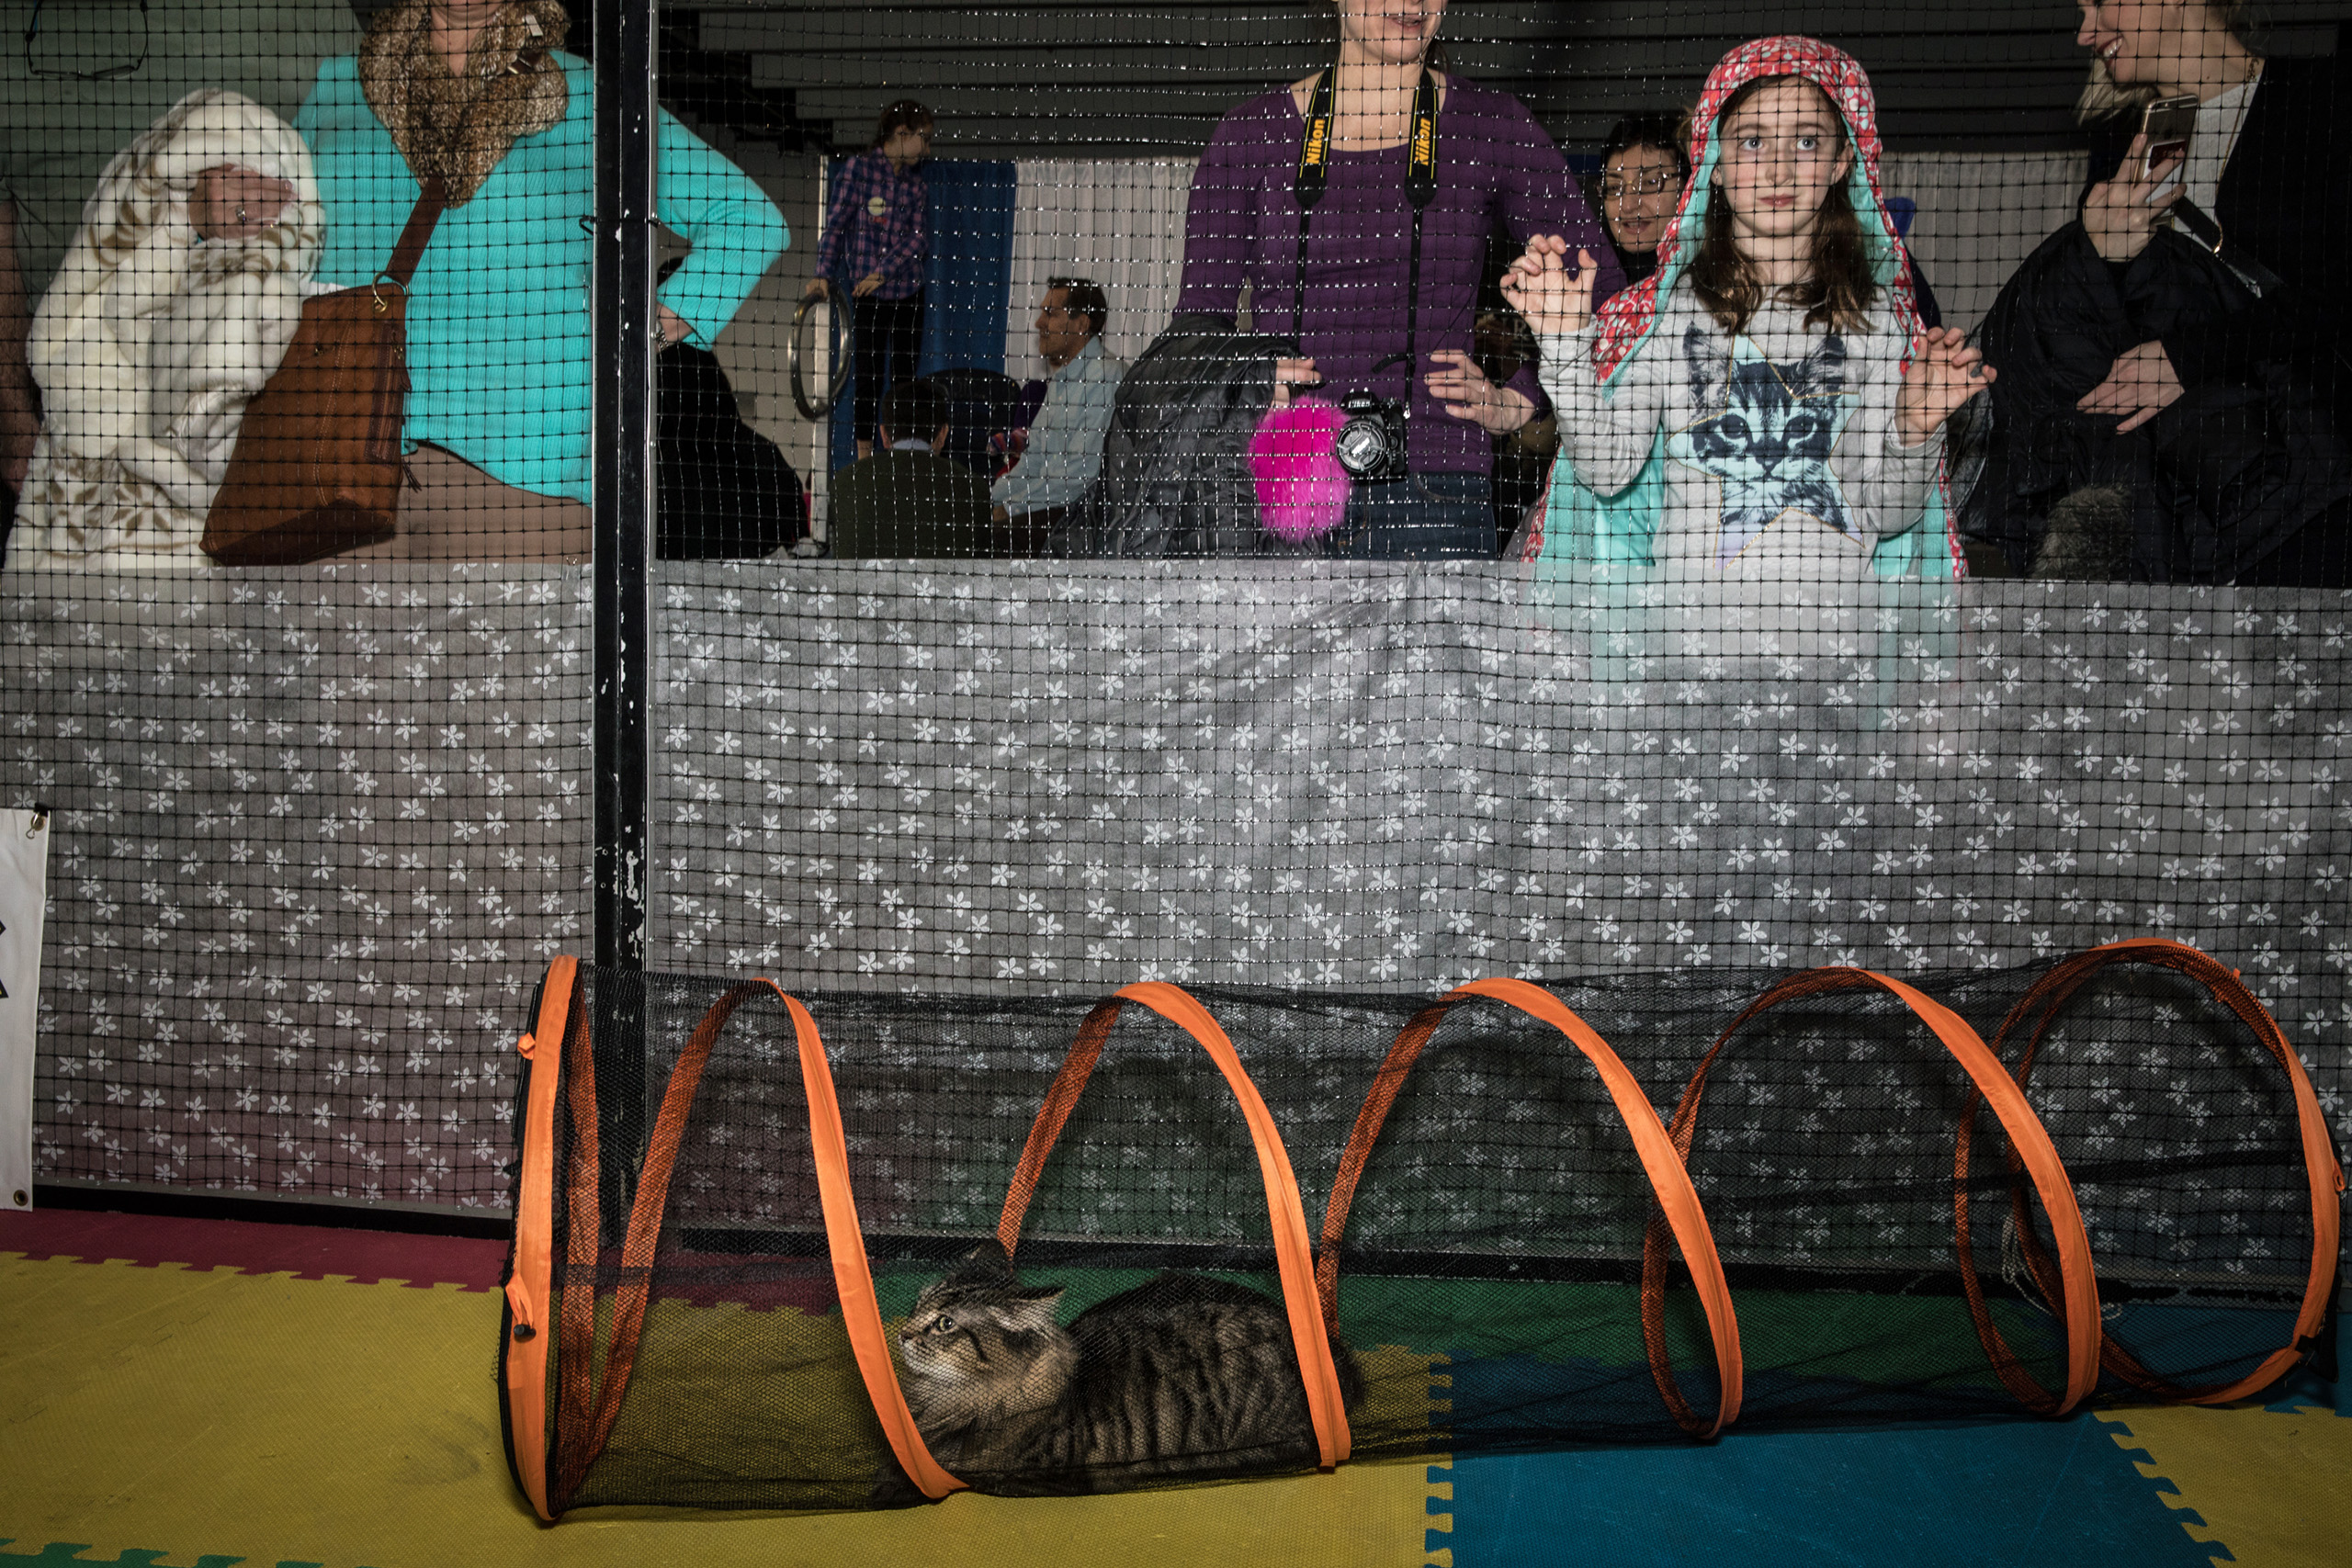 The feline agility course at the American Kennel Club's Meet the Breeds event on Feb. 11, 2017.